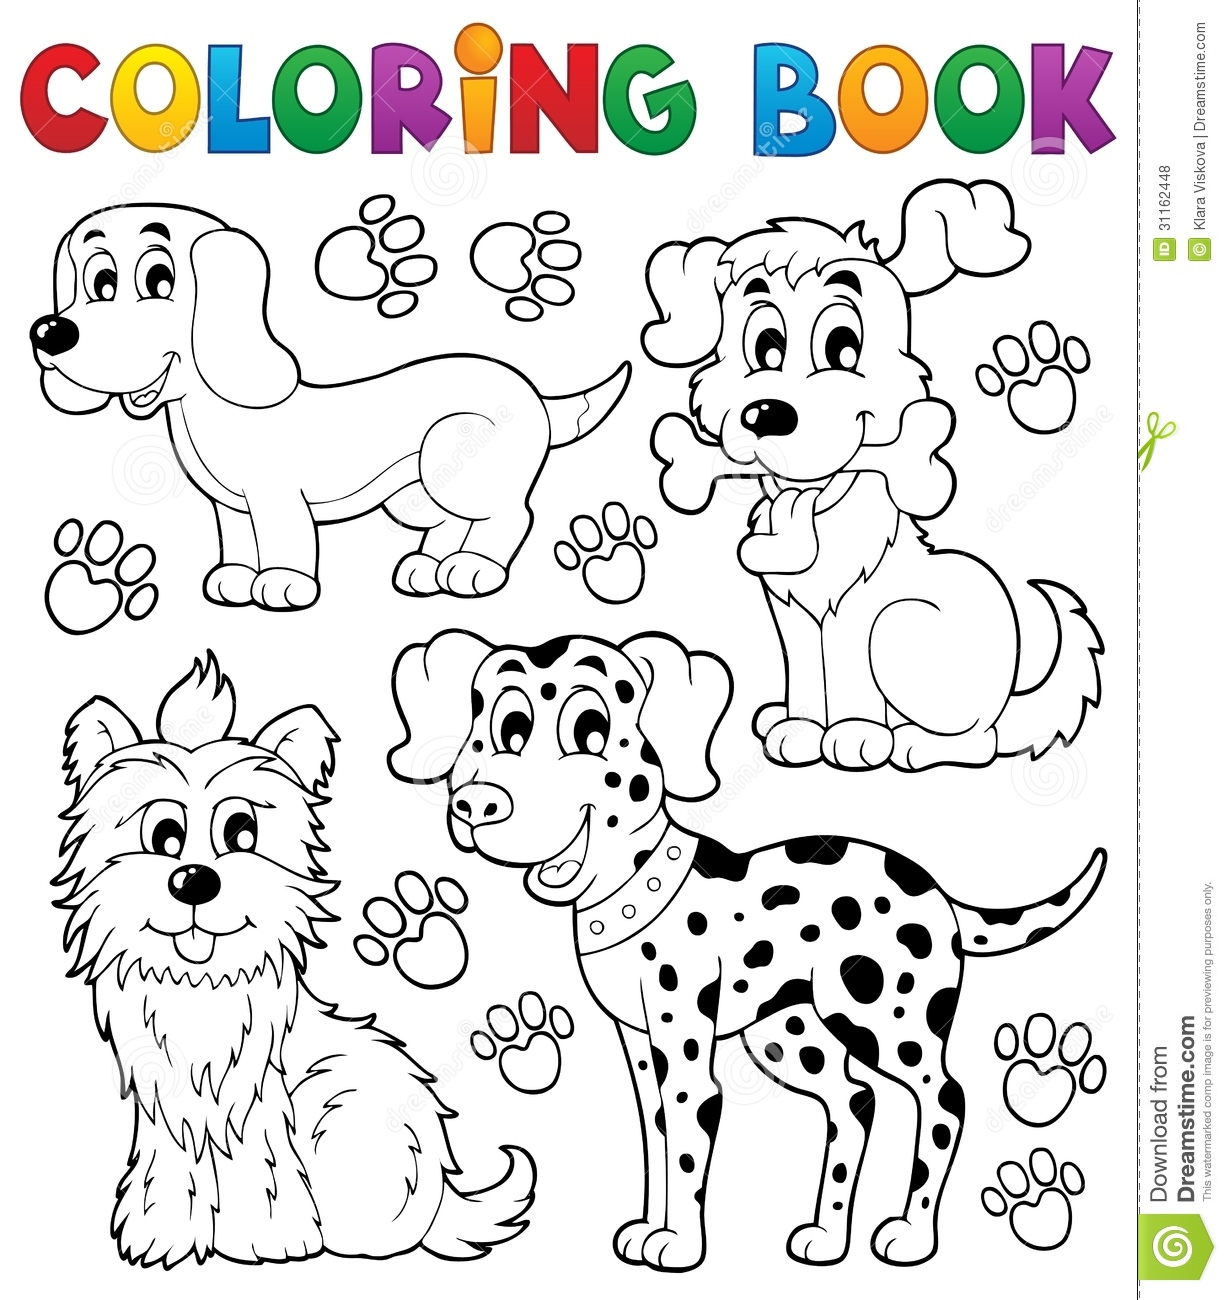 Colouring in book free - Coloring Book Dog Theme 5